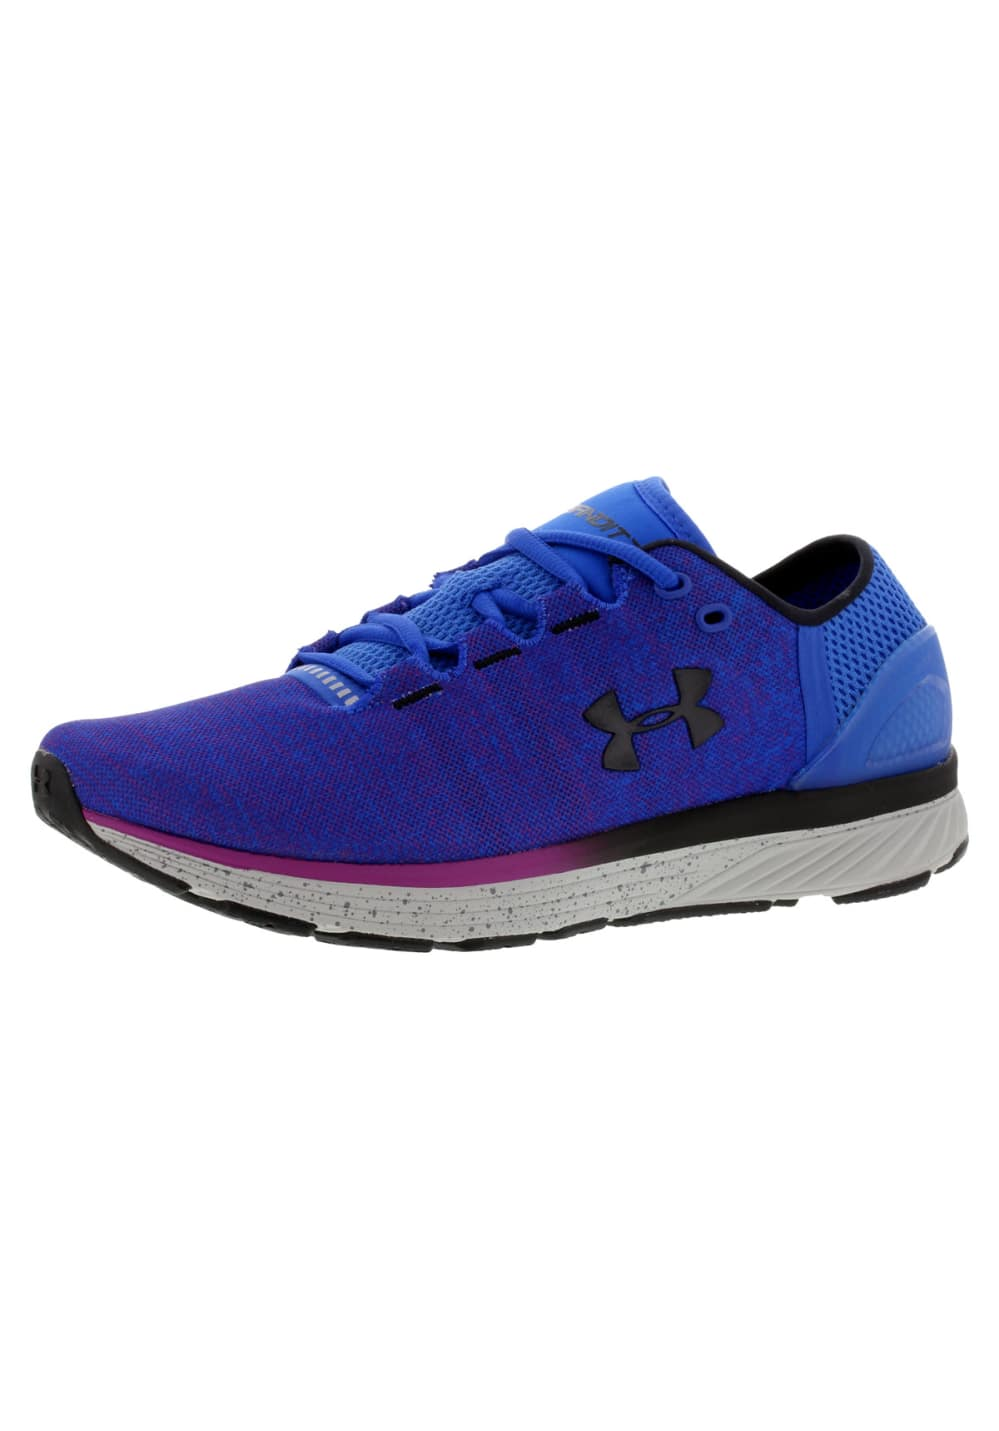 meet 0075c 6a111 Under Armour Charged Bandit 3 - Running shoes for Women - Blue